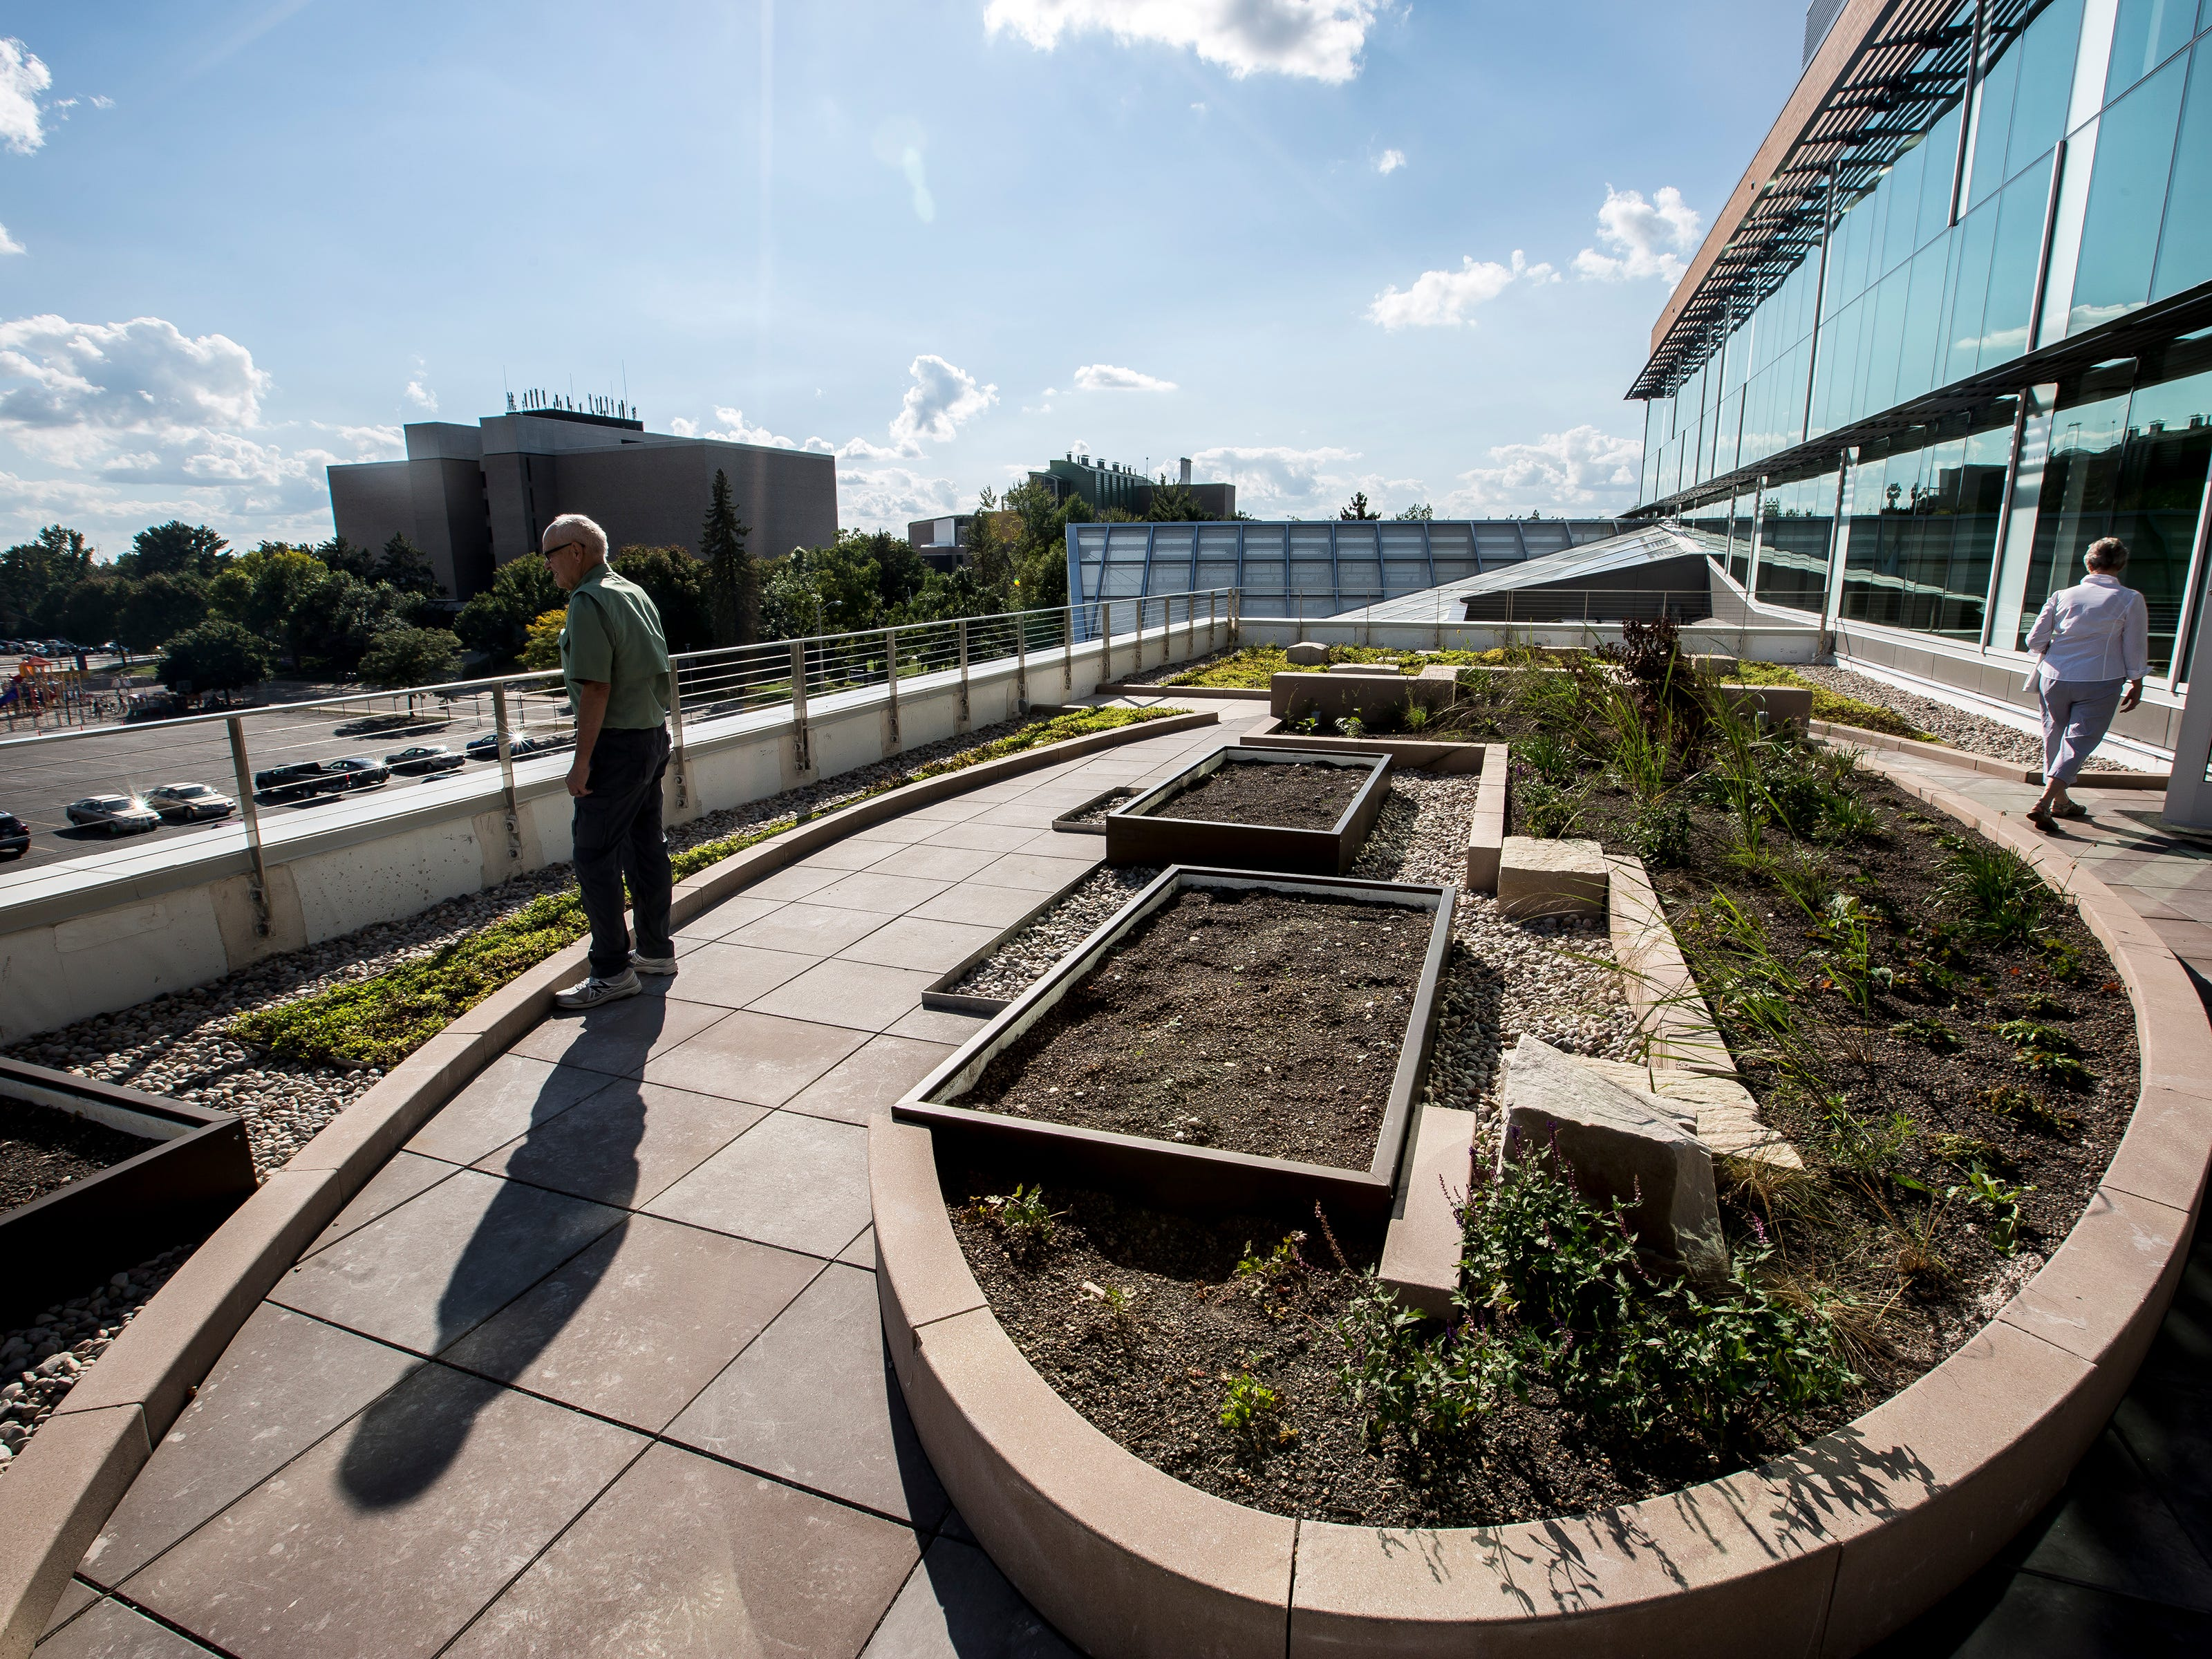 Attendees look at a green roof on the third floor, which was funded by student fees and program revenue, during a tour of the Chemistry Biology Building at the University of Wisconsin-Stevens Point in Stevens Point, Wis., Sept. 14, 2018.